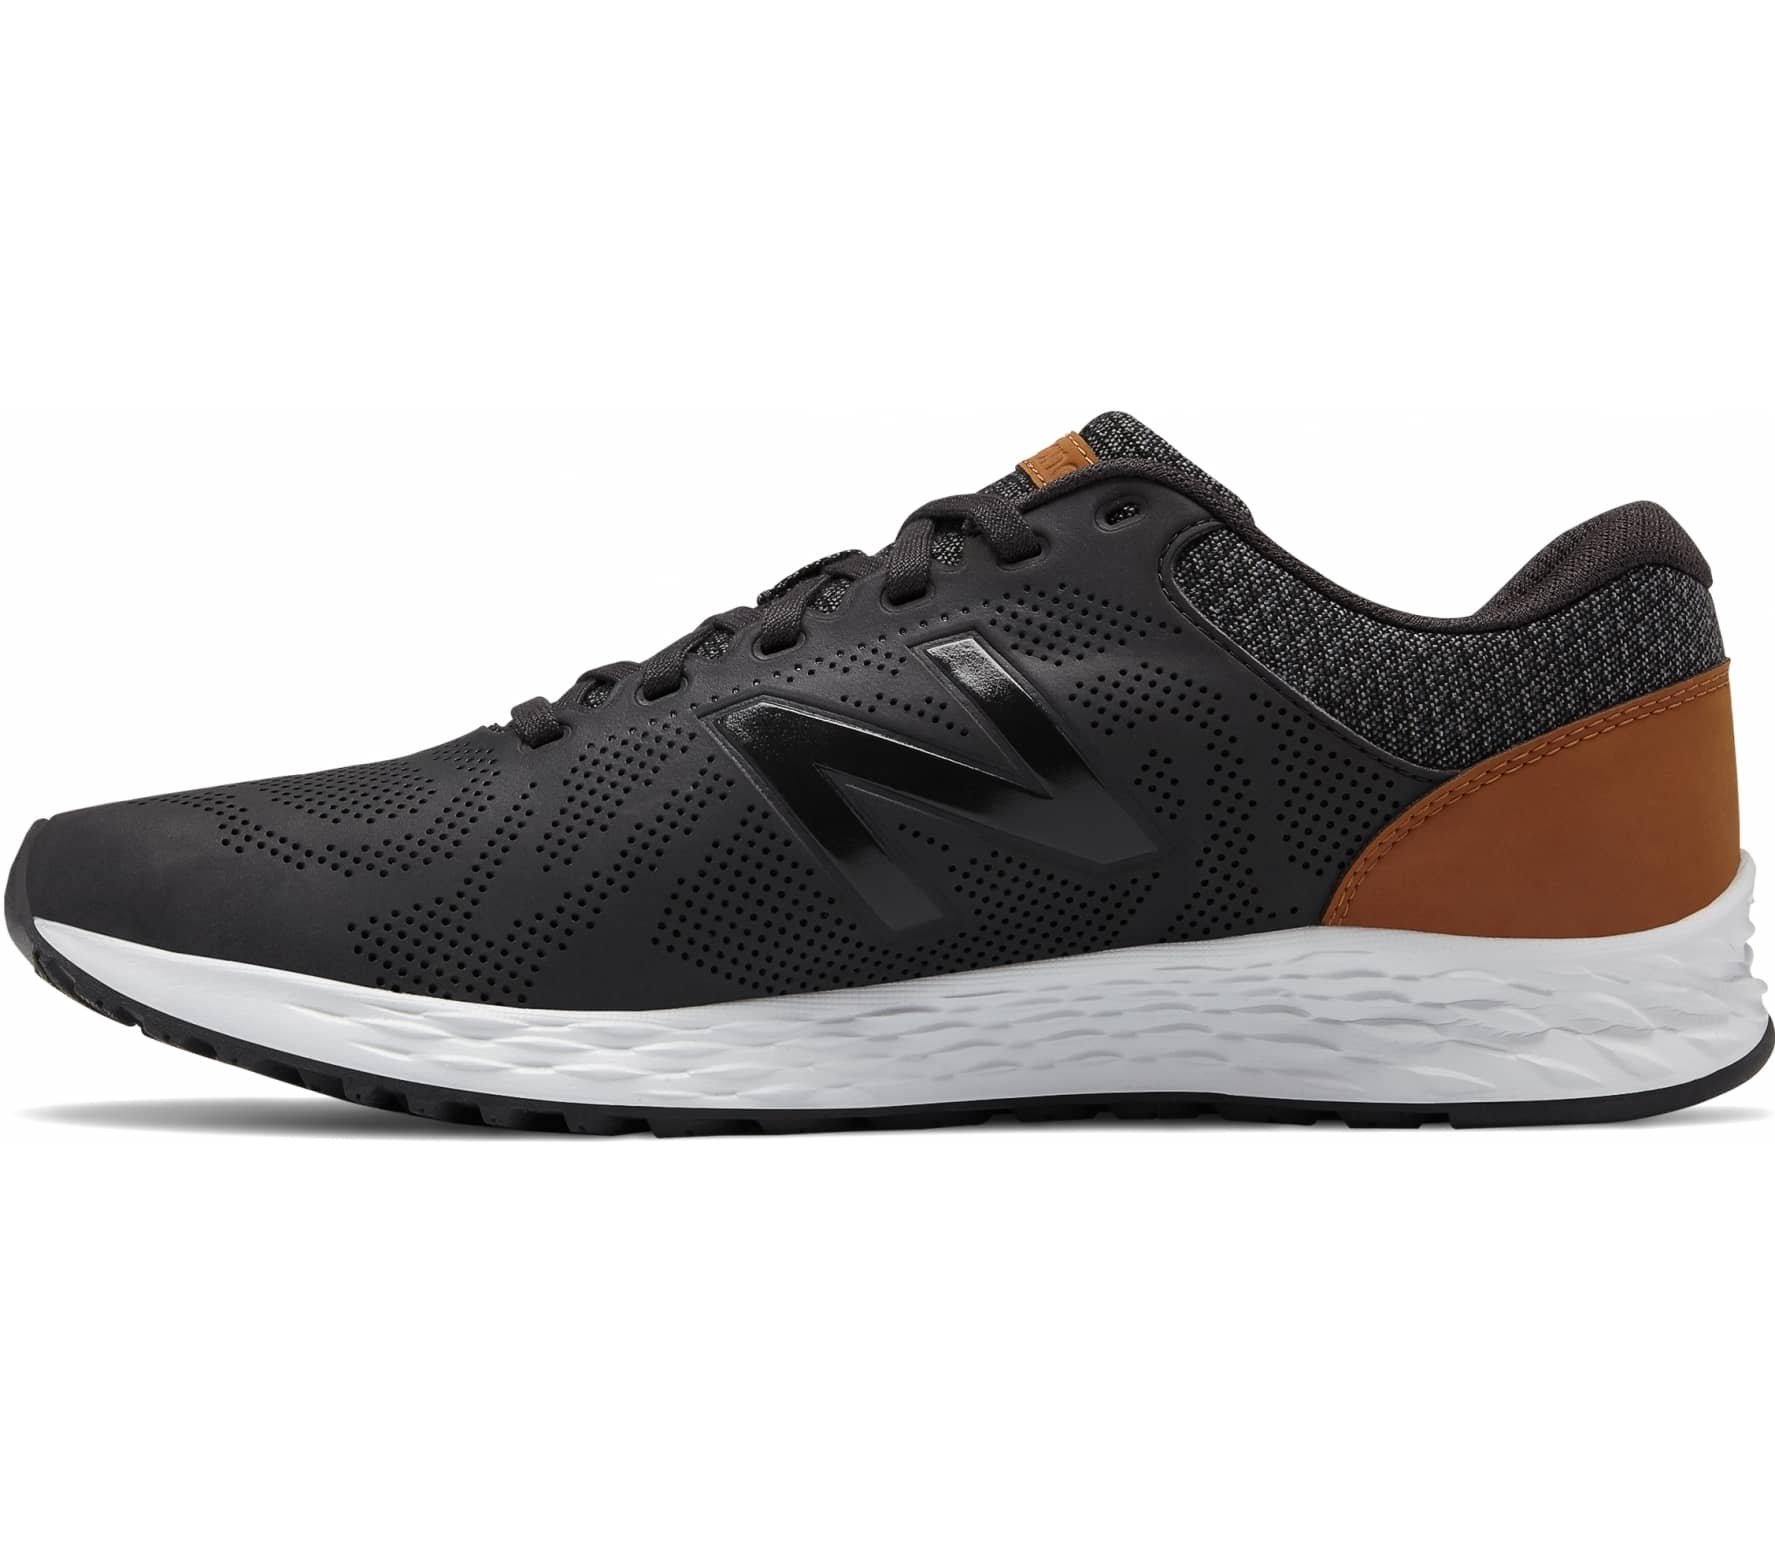 new style 39bfb ae5b8 New Balance - Arishi LUX men's running shoes (black)